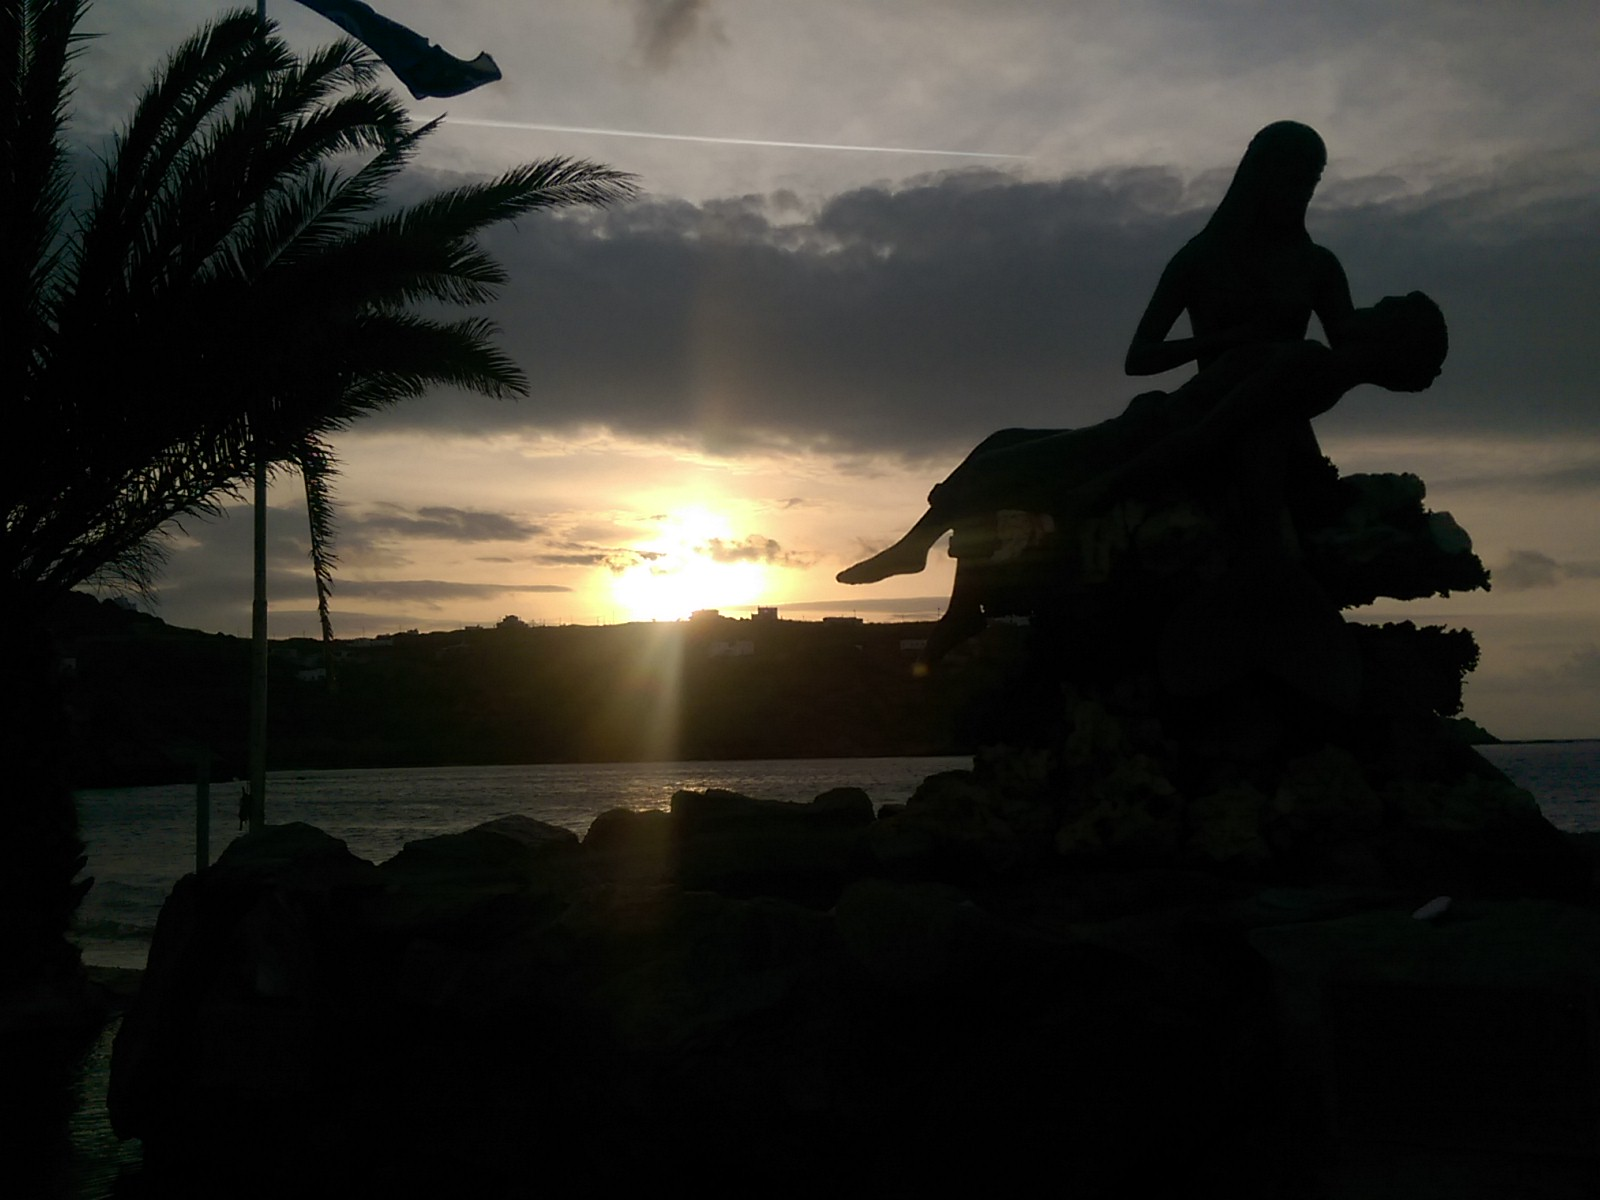 The silhouette of a statue of a woman holding a man in front of a pale orange sunset over the ocean